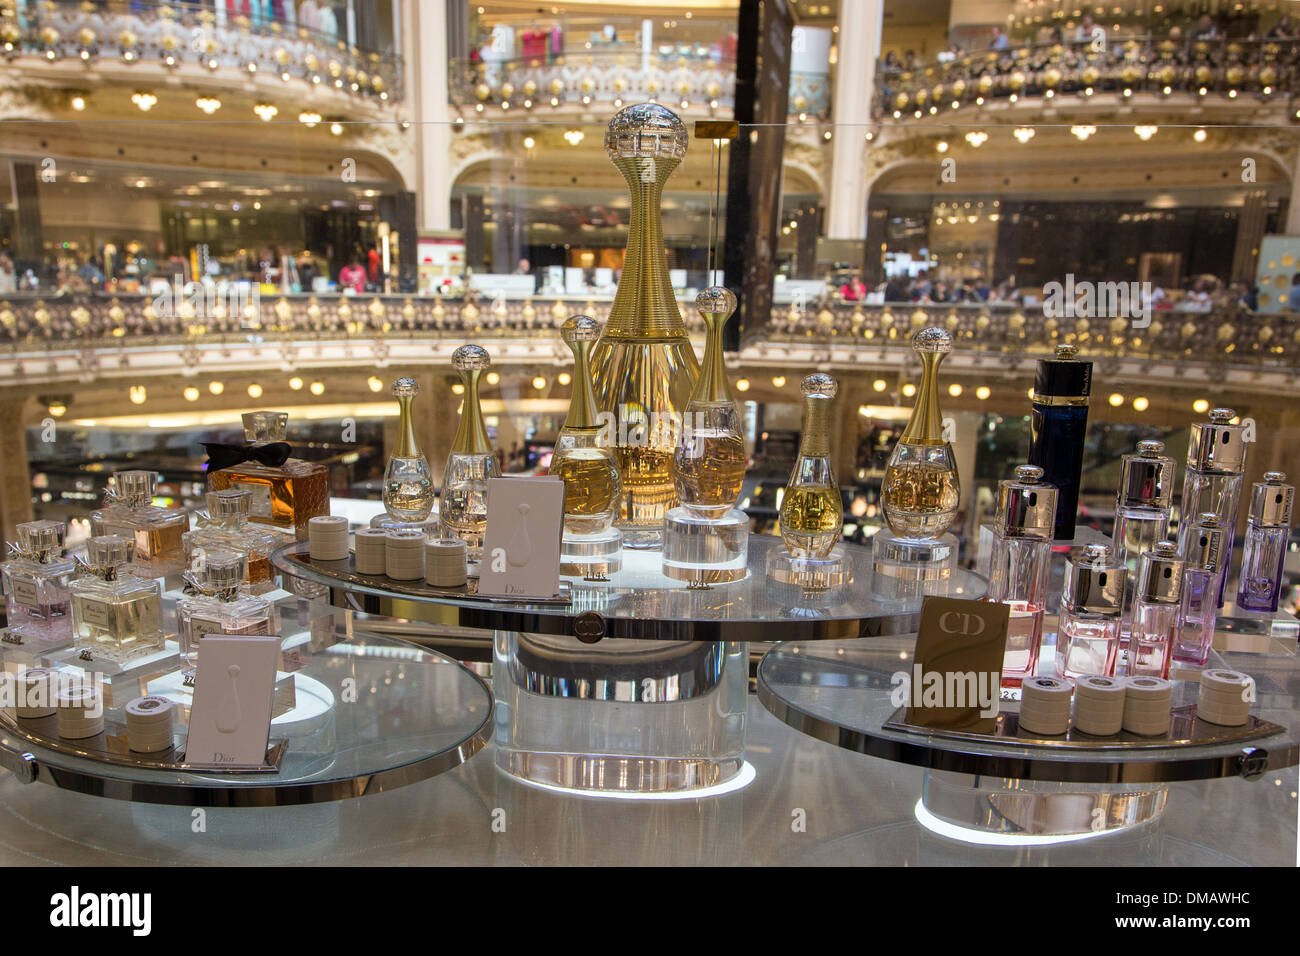 LUXURY GOODS AND DESIGNER PERFUMES BOUTIQUES AT GALERIES LAFAYETTE, DEPARTMENT STORES, PARIS (75), FRANCE - Stock Image